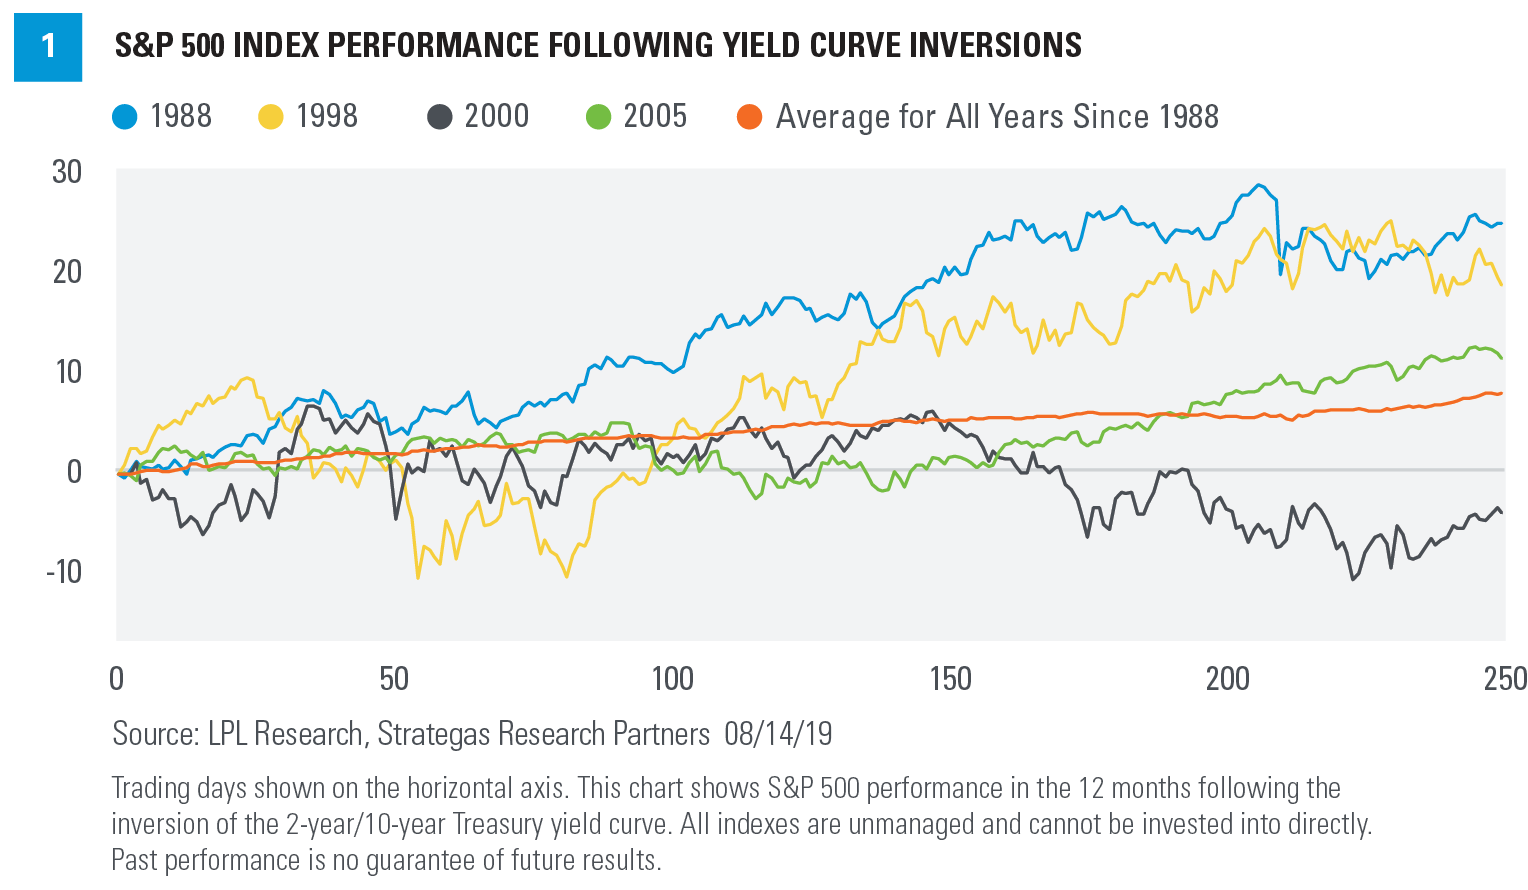 S & P 500 Index Performance Following Yield Curve Inversions